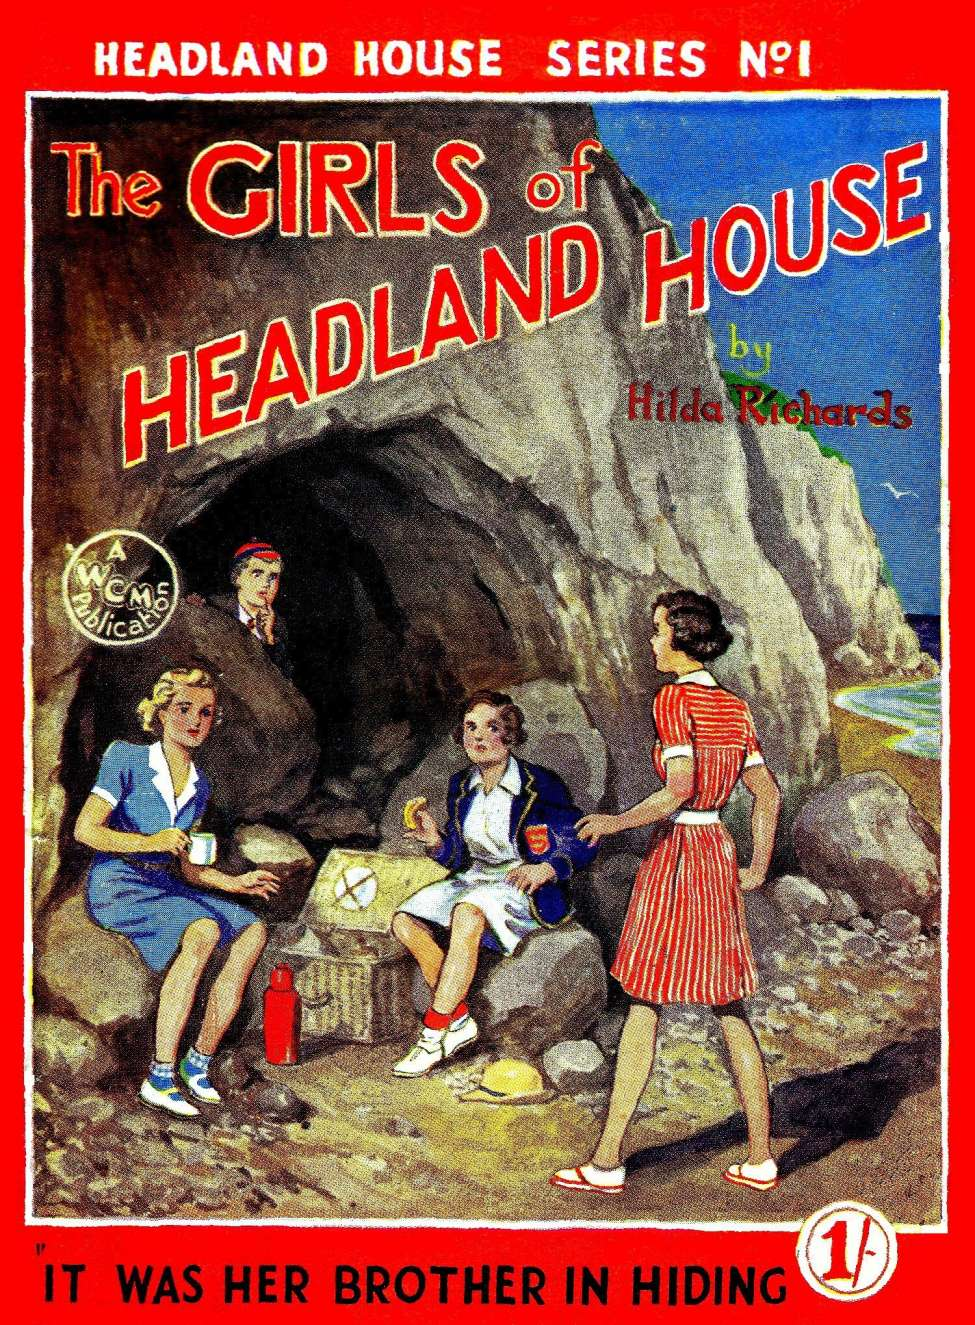 Comic Book Cover For The Girls of Headland House 01 - It was her Brother in Hiding